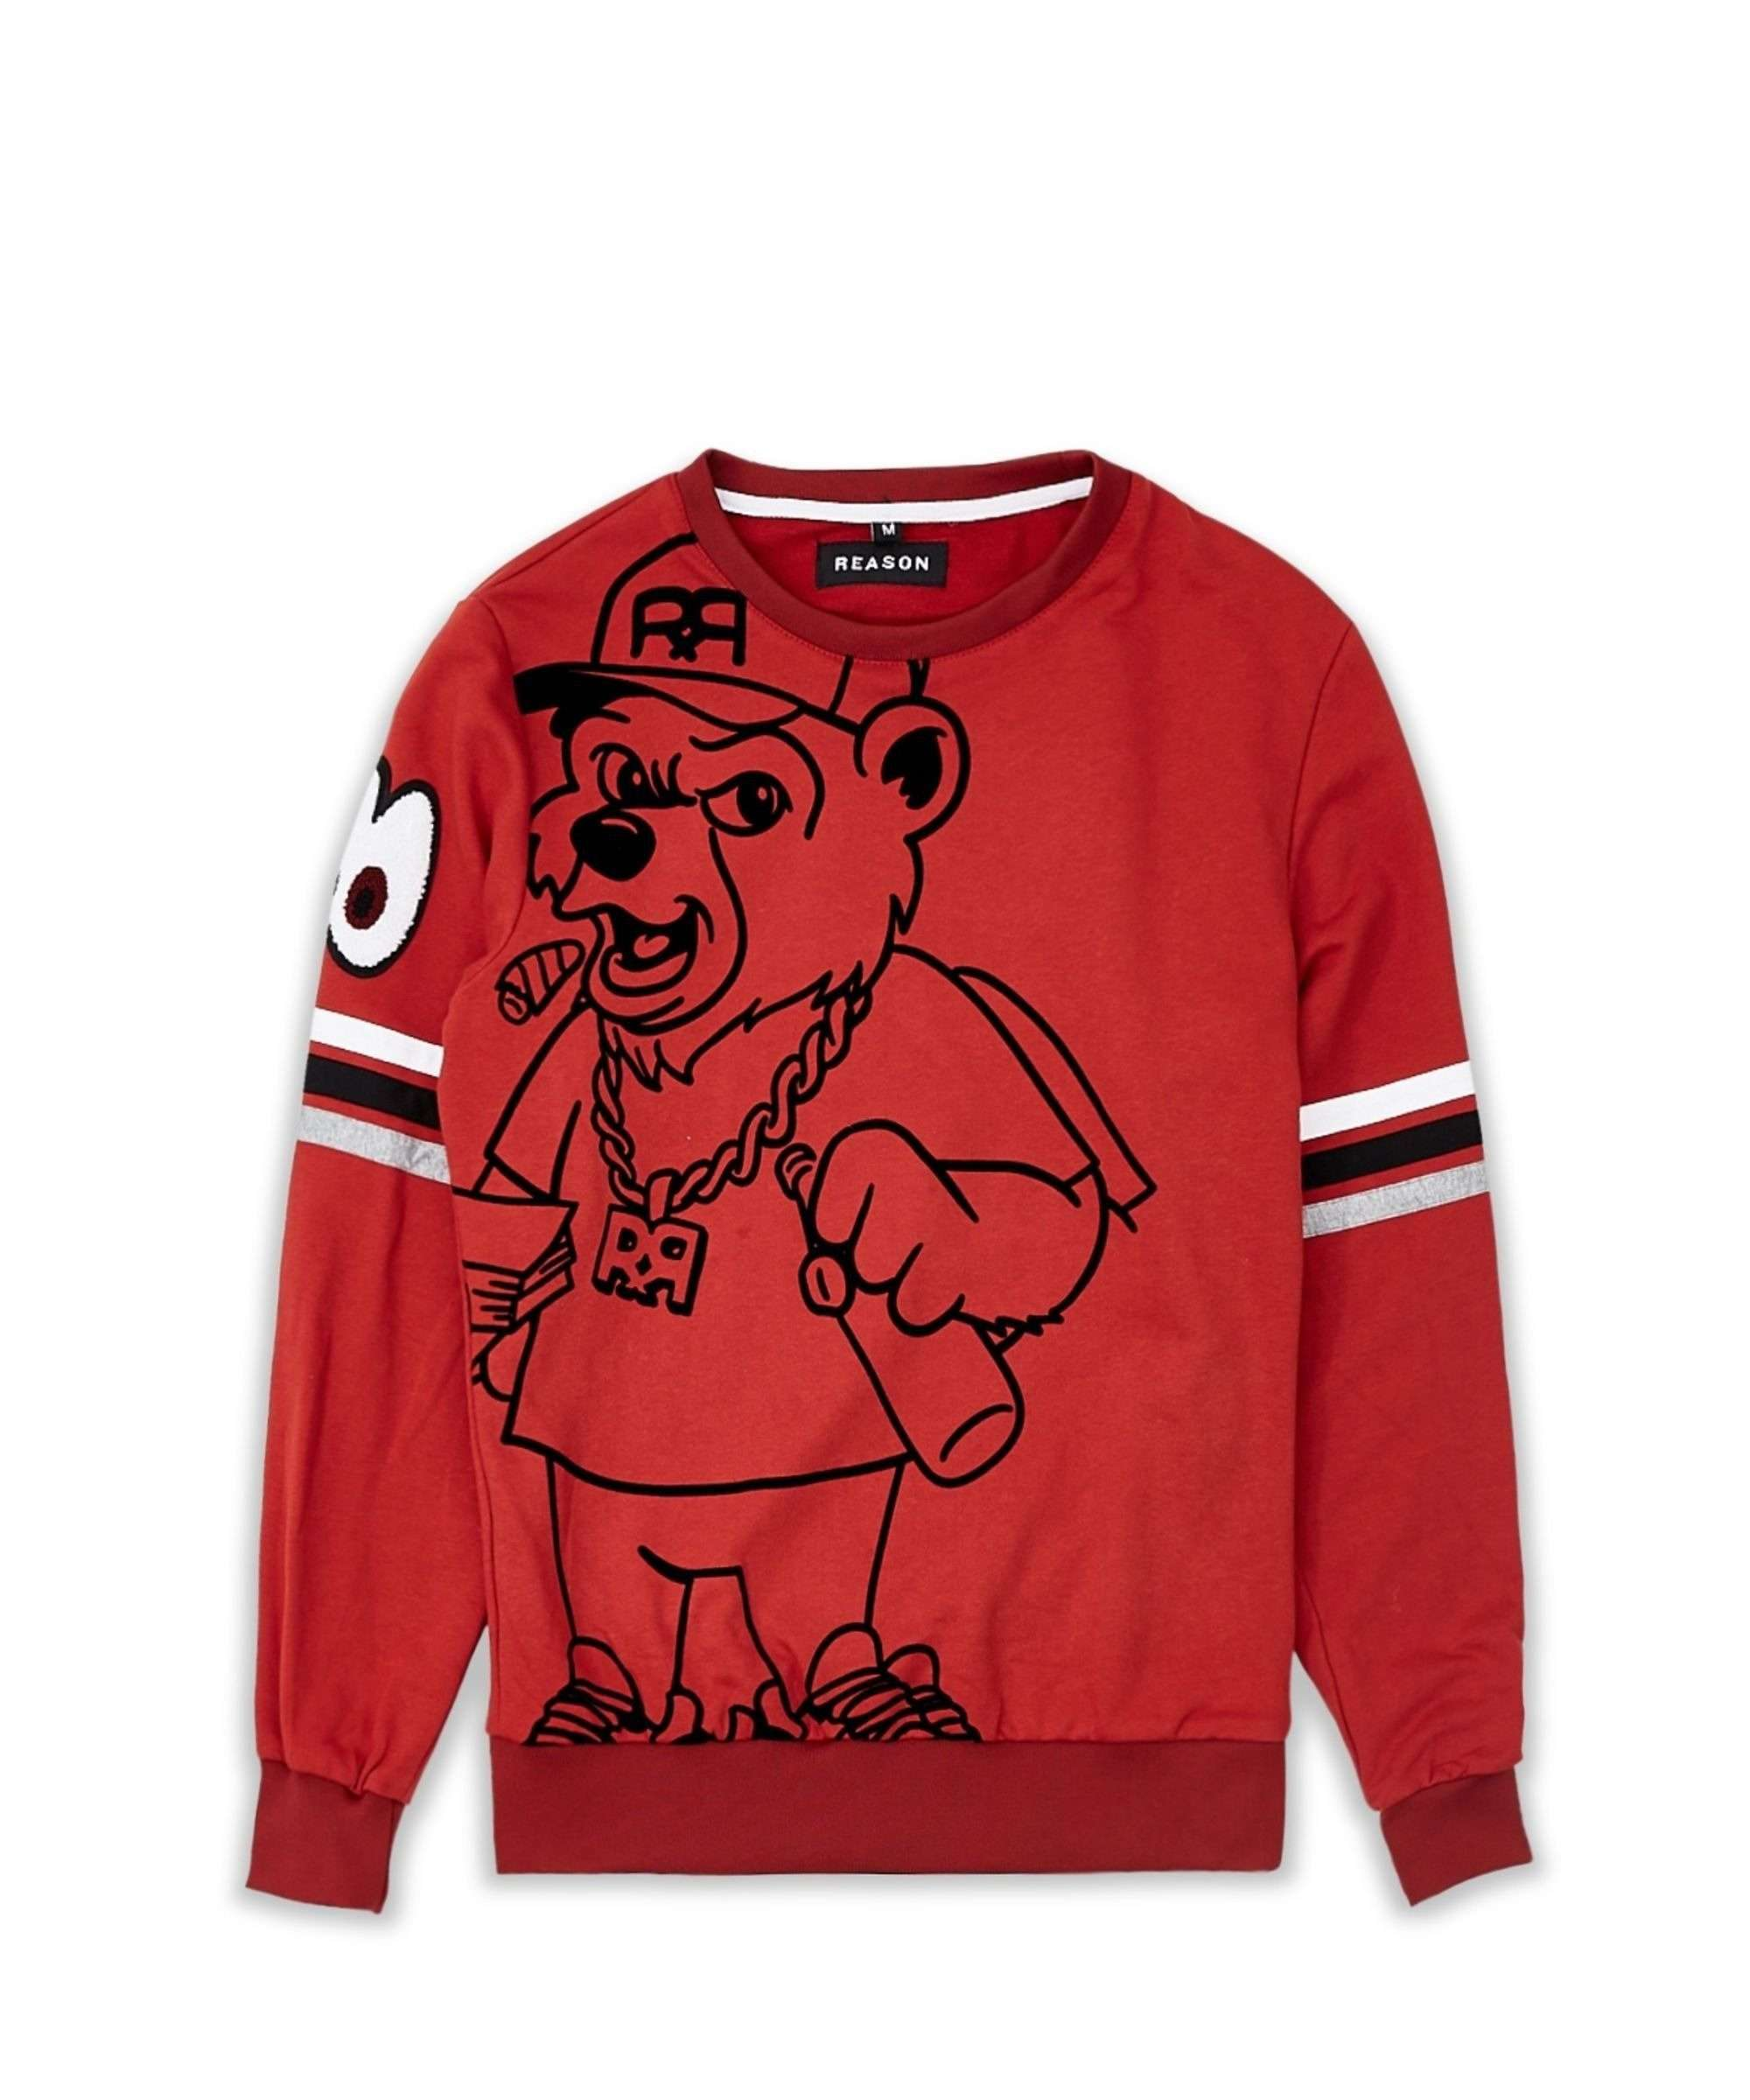 REASON BEAR CREWNECK Reason Clothing